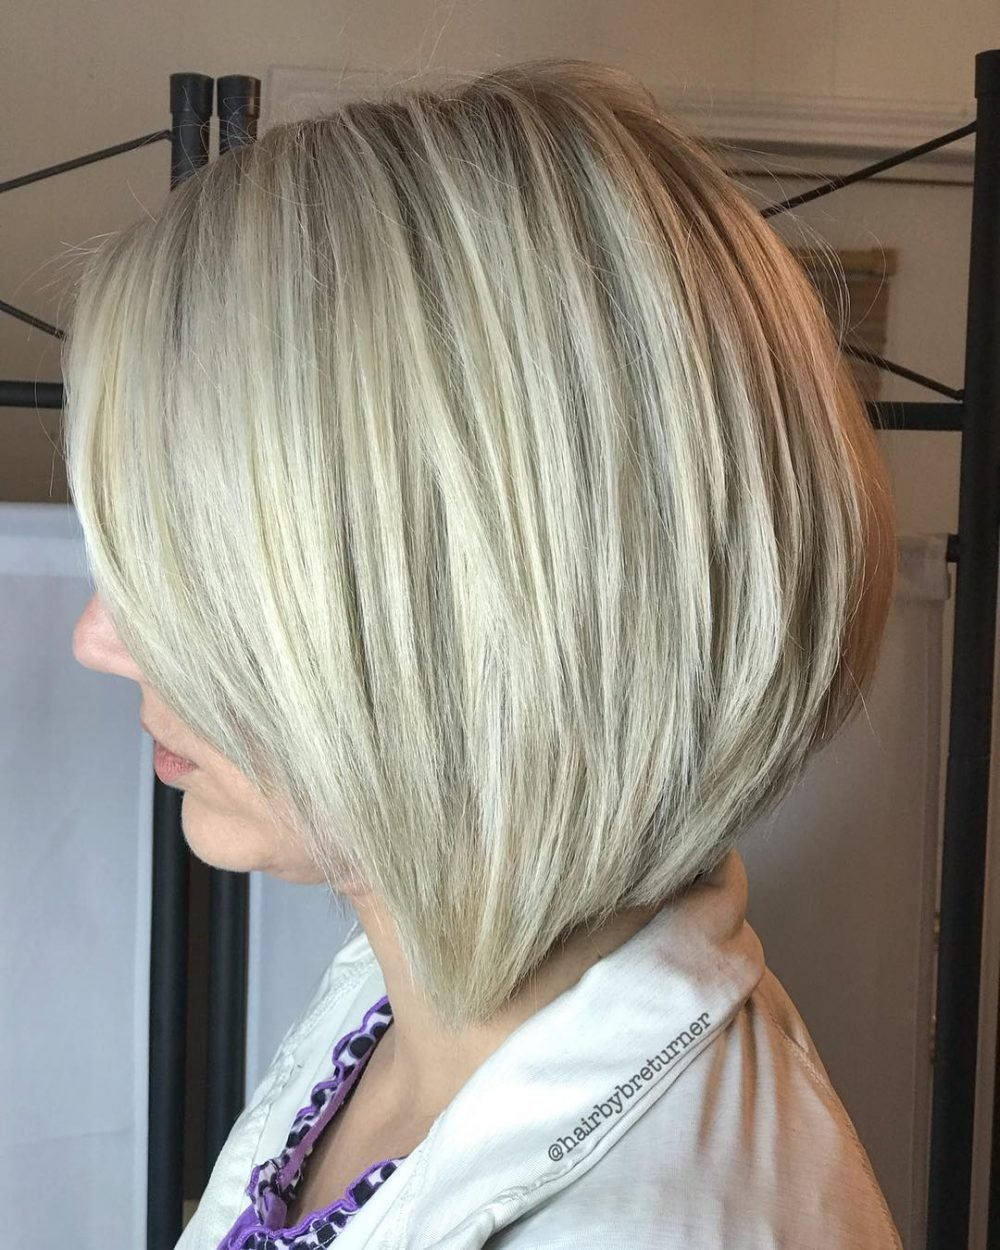 New 42 Sexiest Short Hairstyles For Women Over 40 In 2019 Ideas With Pictures